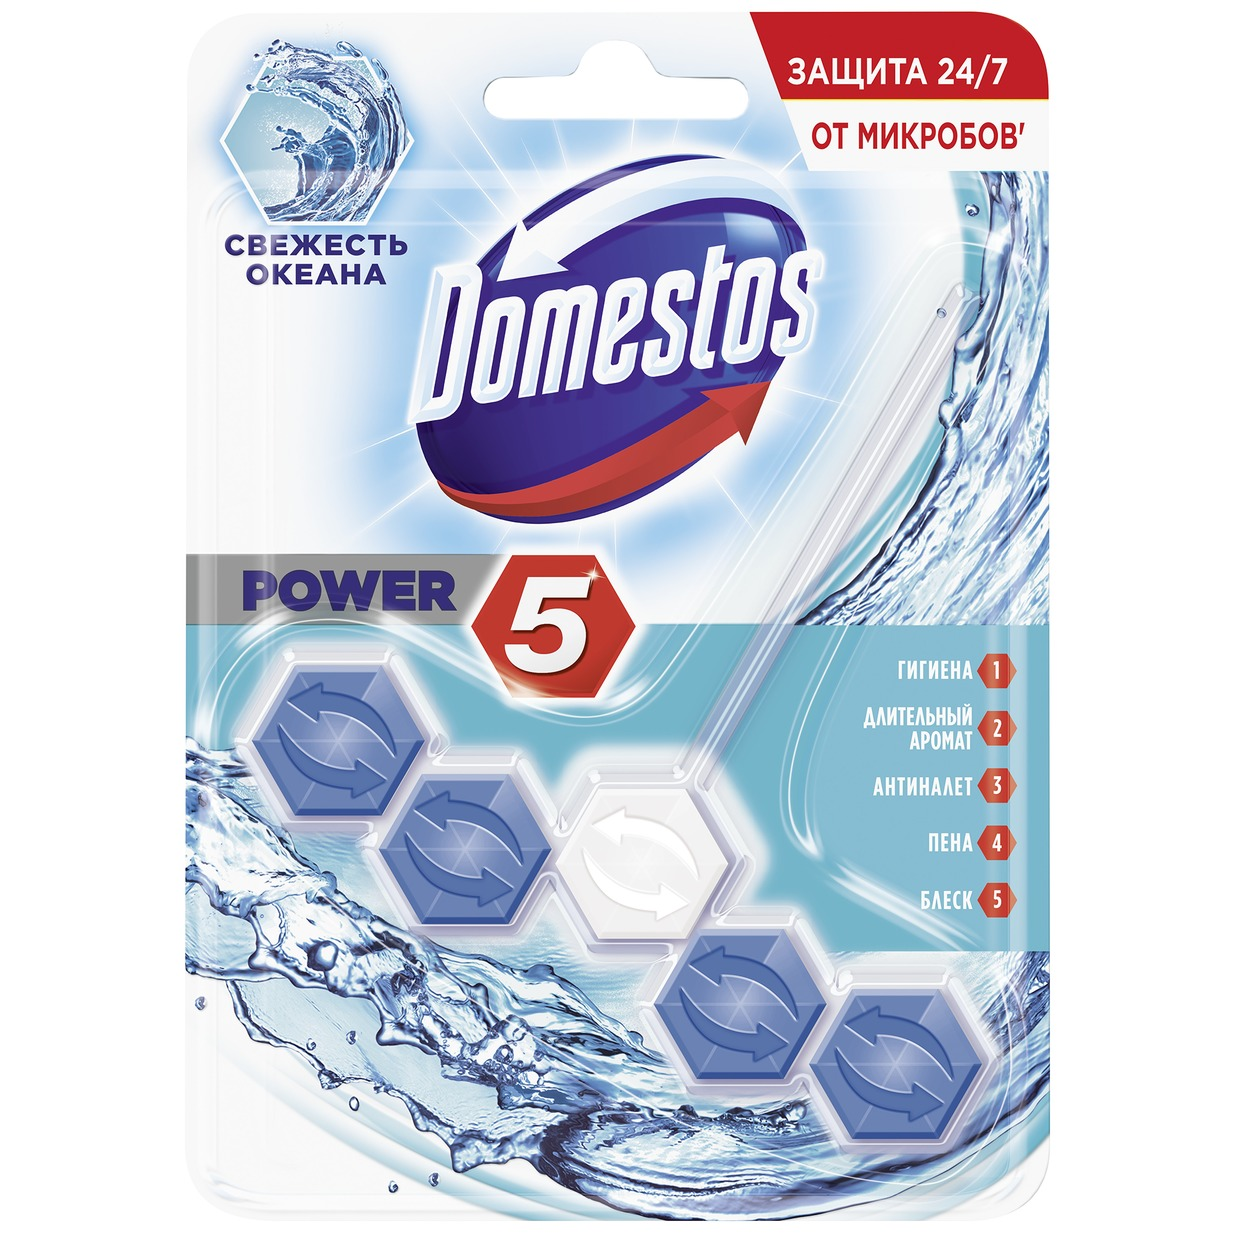 Блок д/очищ.унитаза Domestos Power 5 свеж.океана 55 г.